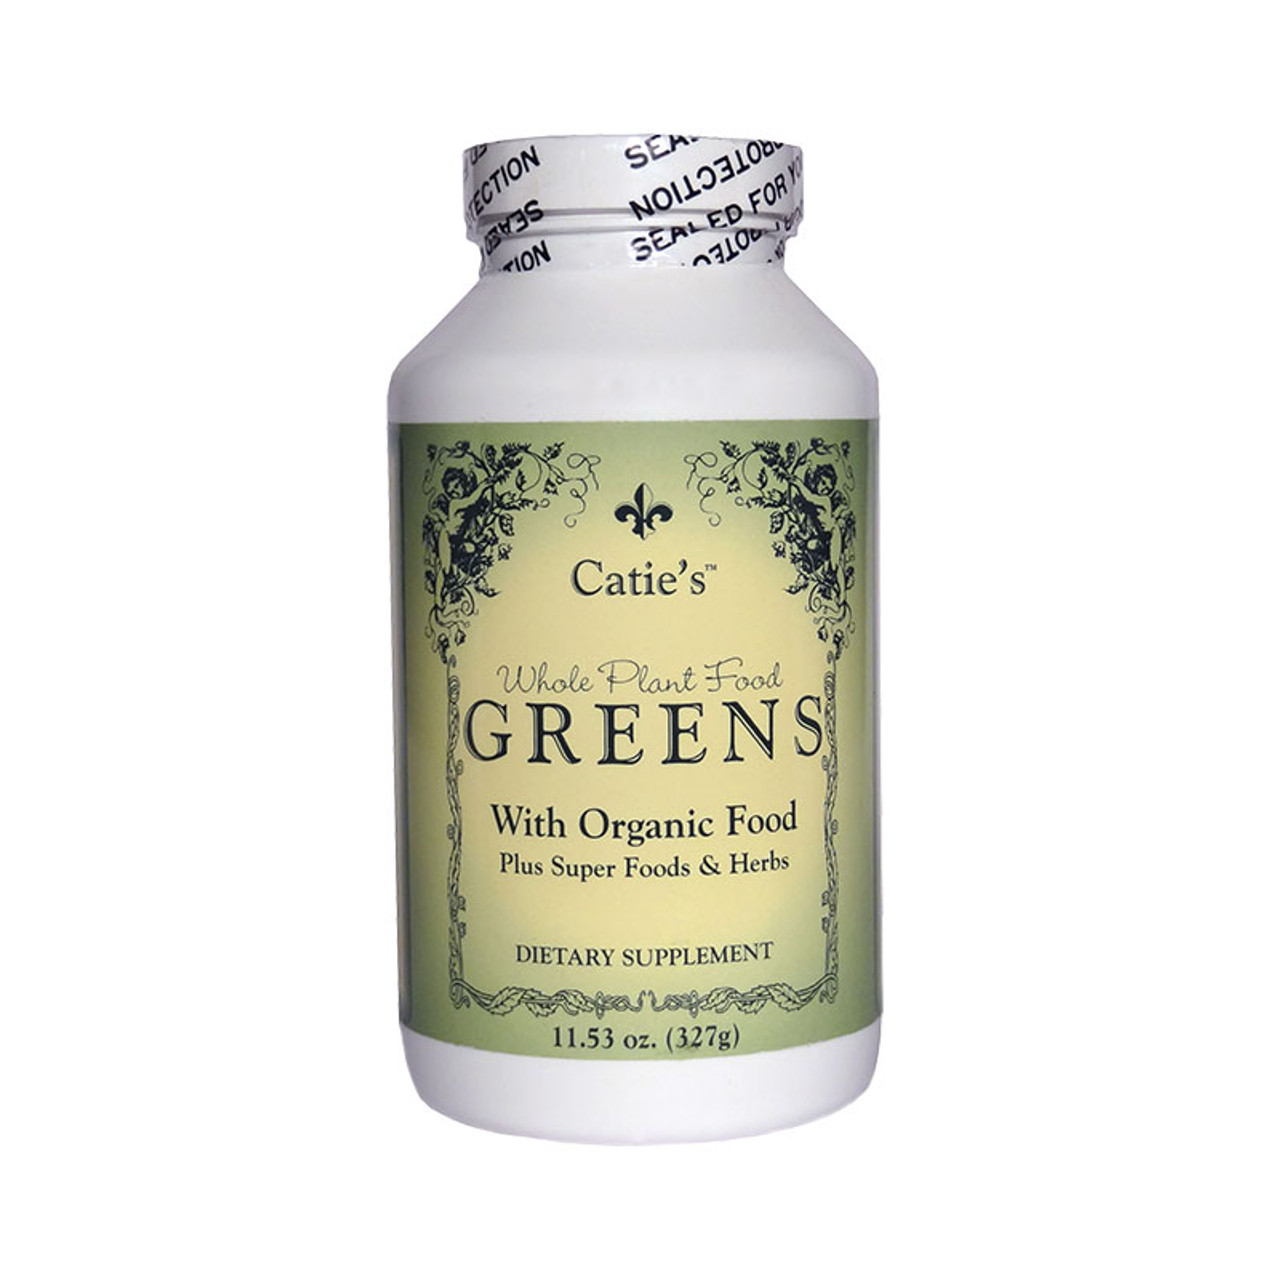 Front view of a bottle of Catie's Whole plant food Greens with organic food.